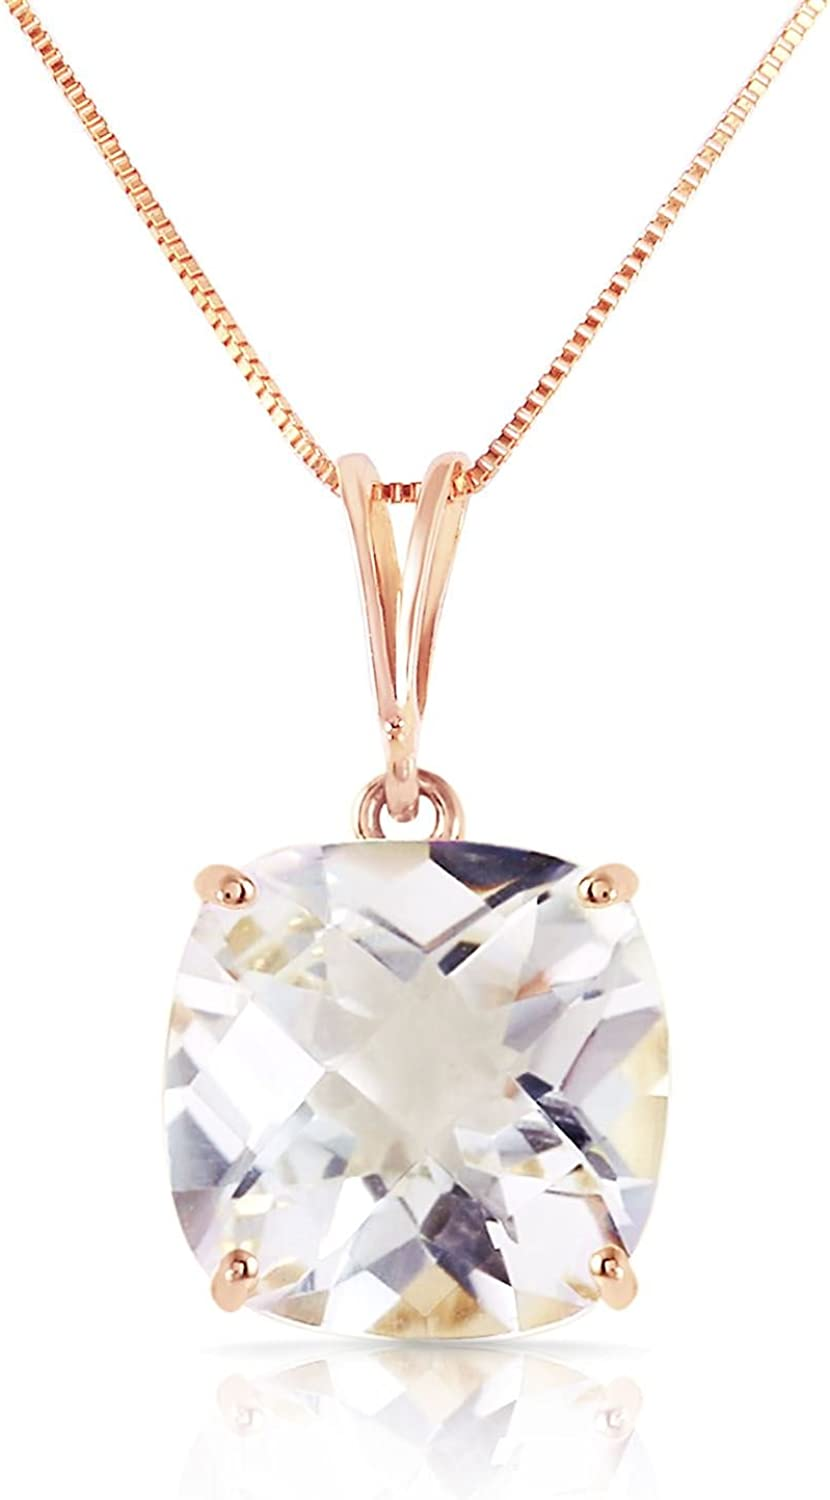 ALARRI 3.6 Carat 14K Solid Rose Gold Necklace Natural Checkerboard Cut White Topaz with 22 Inch Chain Length